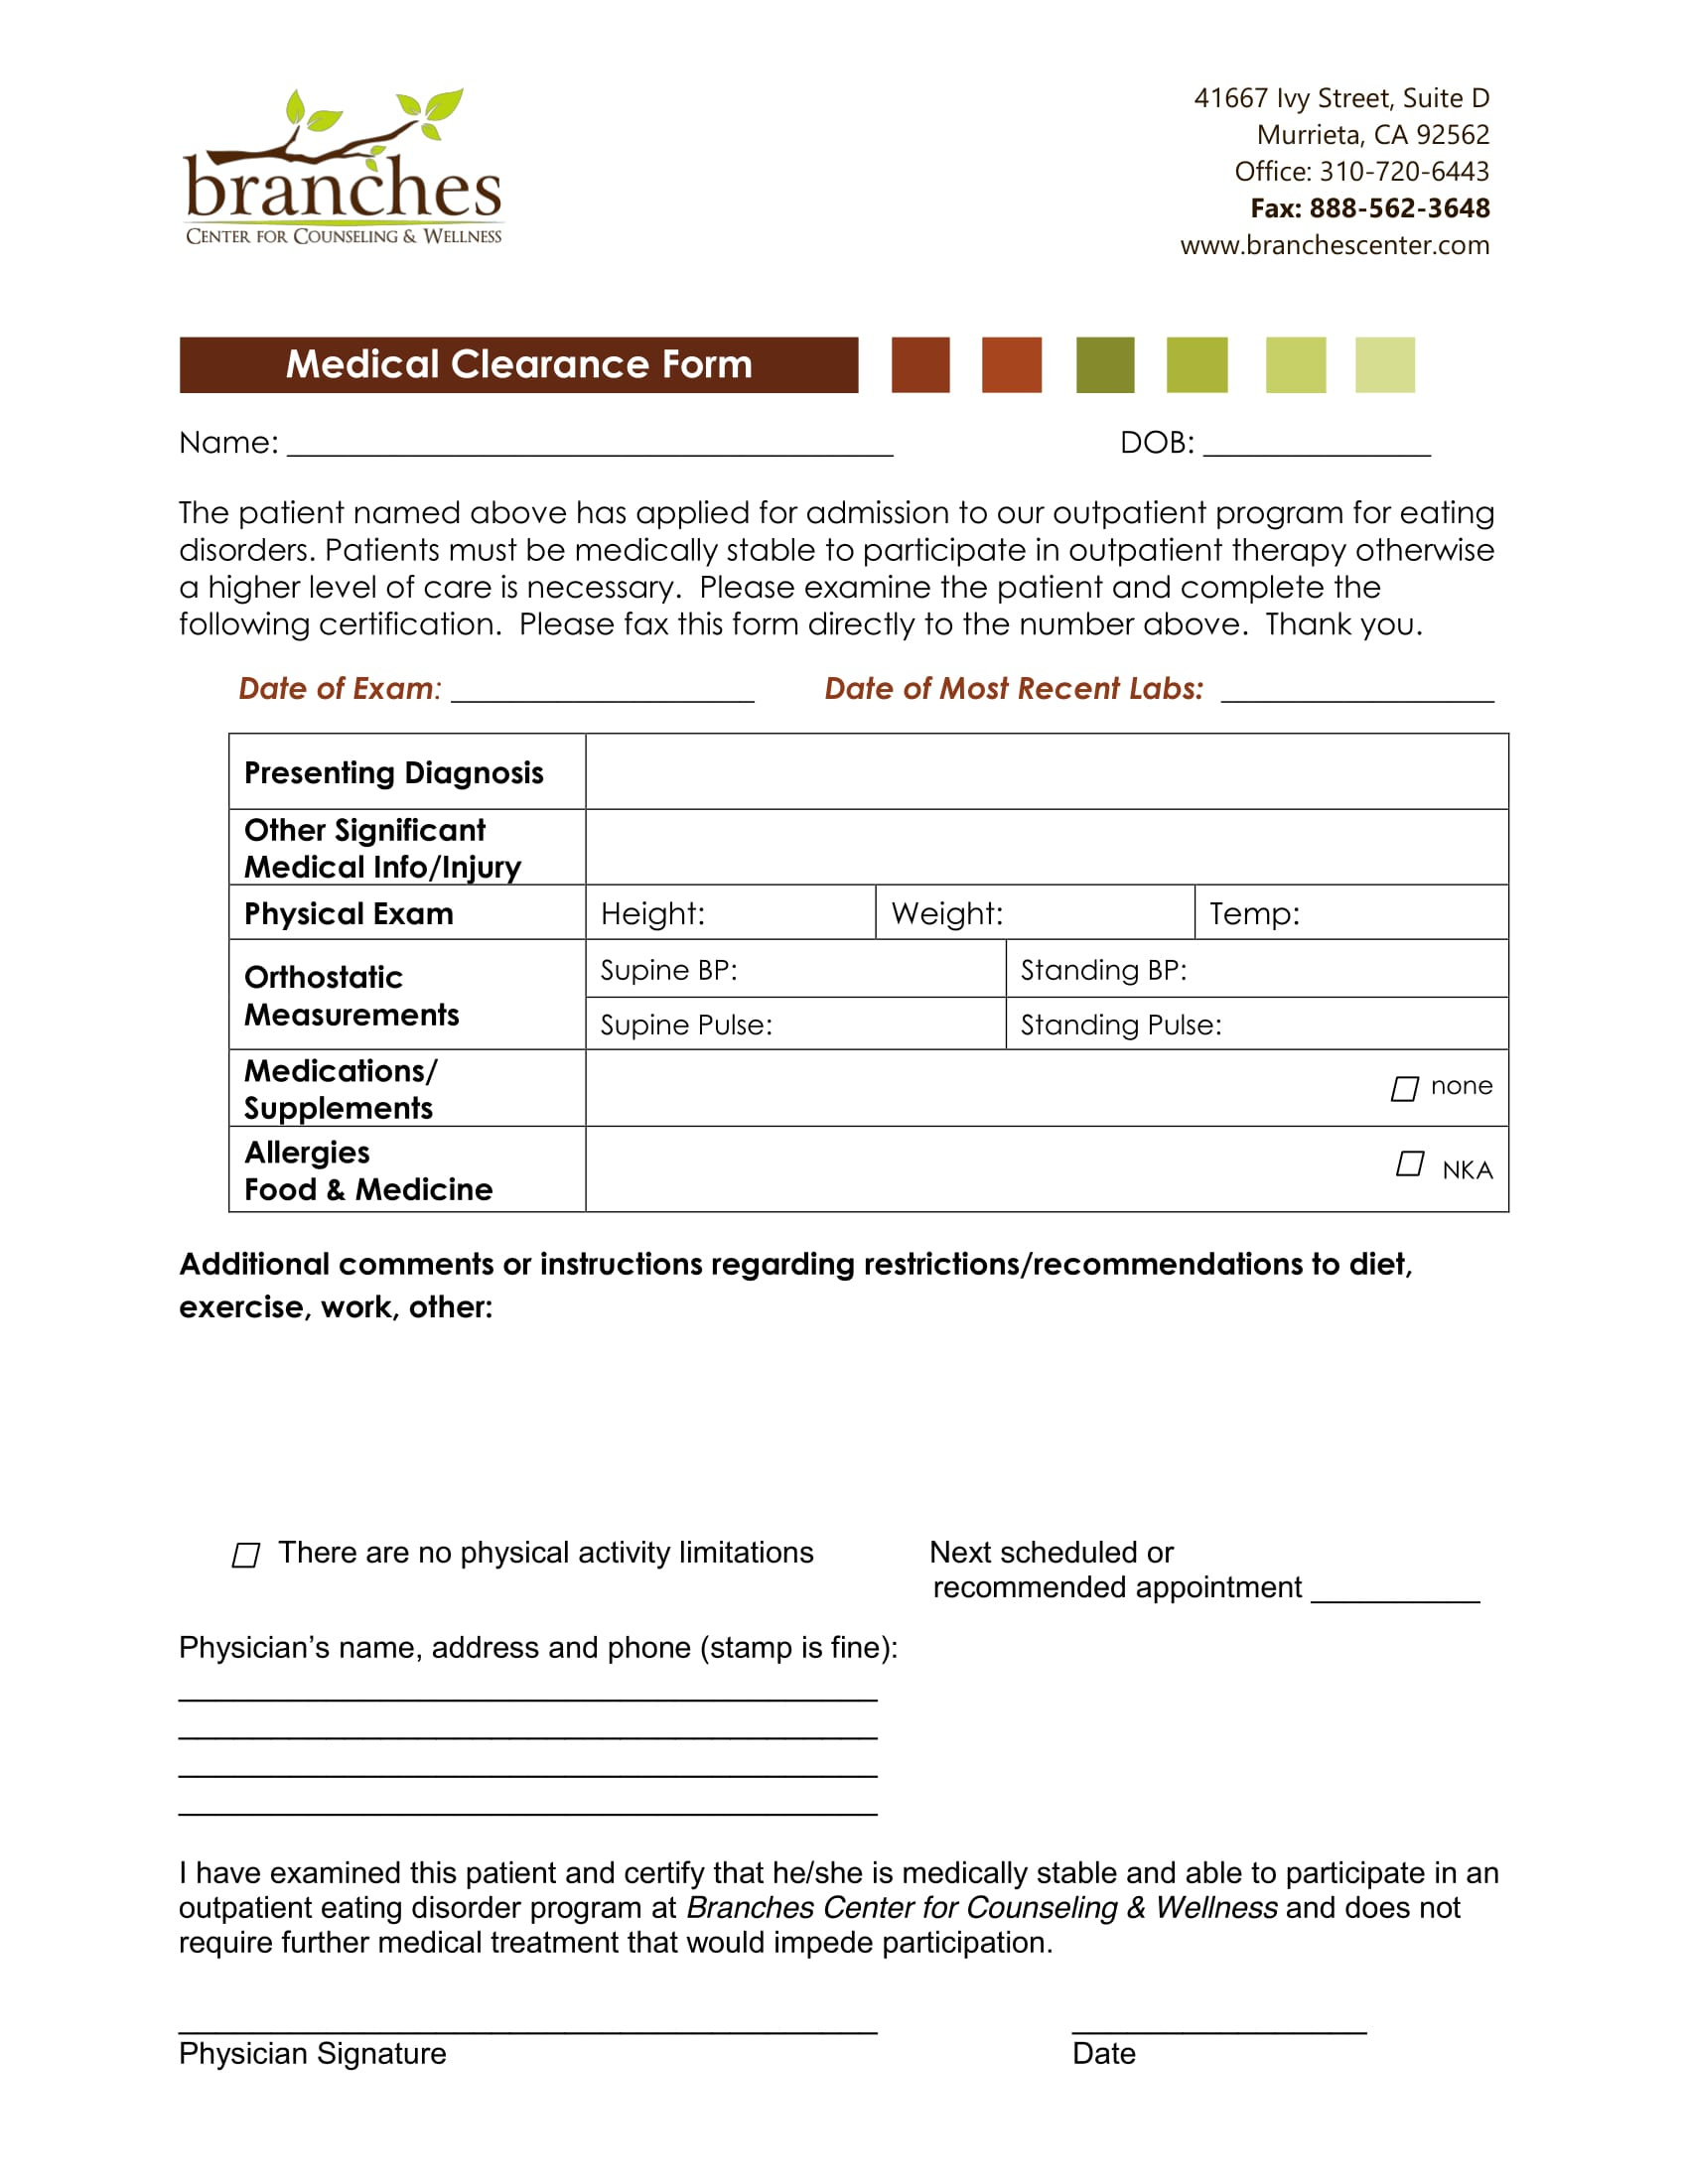 29 Medical Clearance Form Examples Counseling Medical Clearance Form 1 Medical  Clearance Form Examplehtml